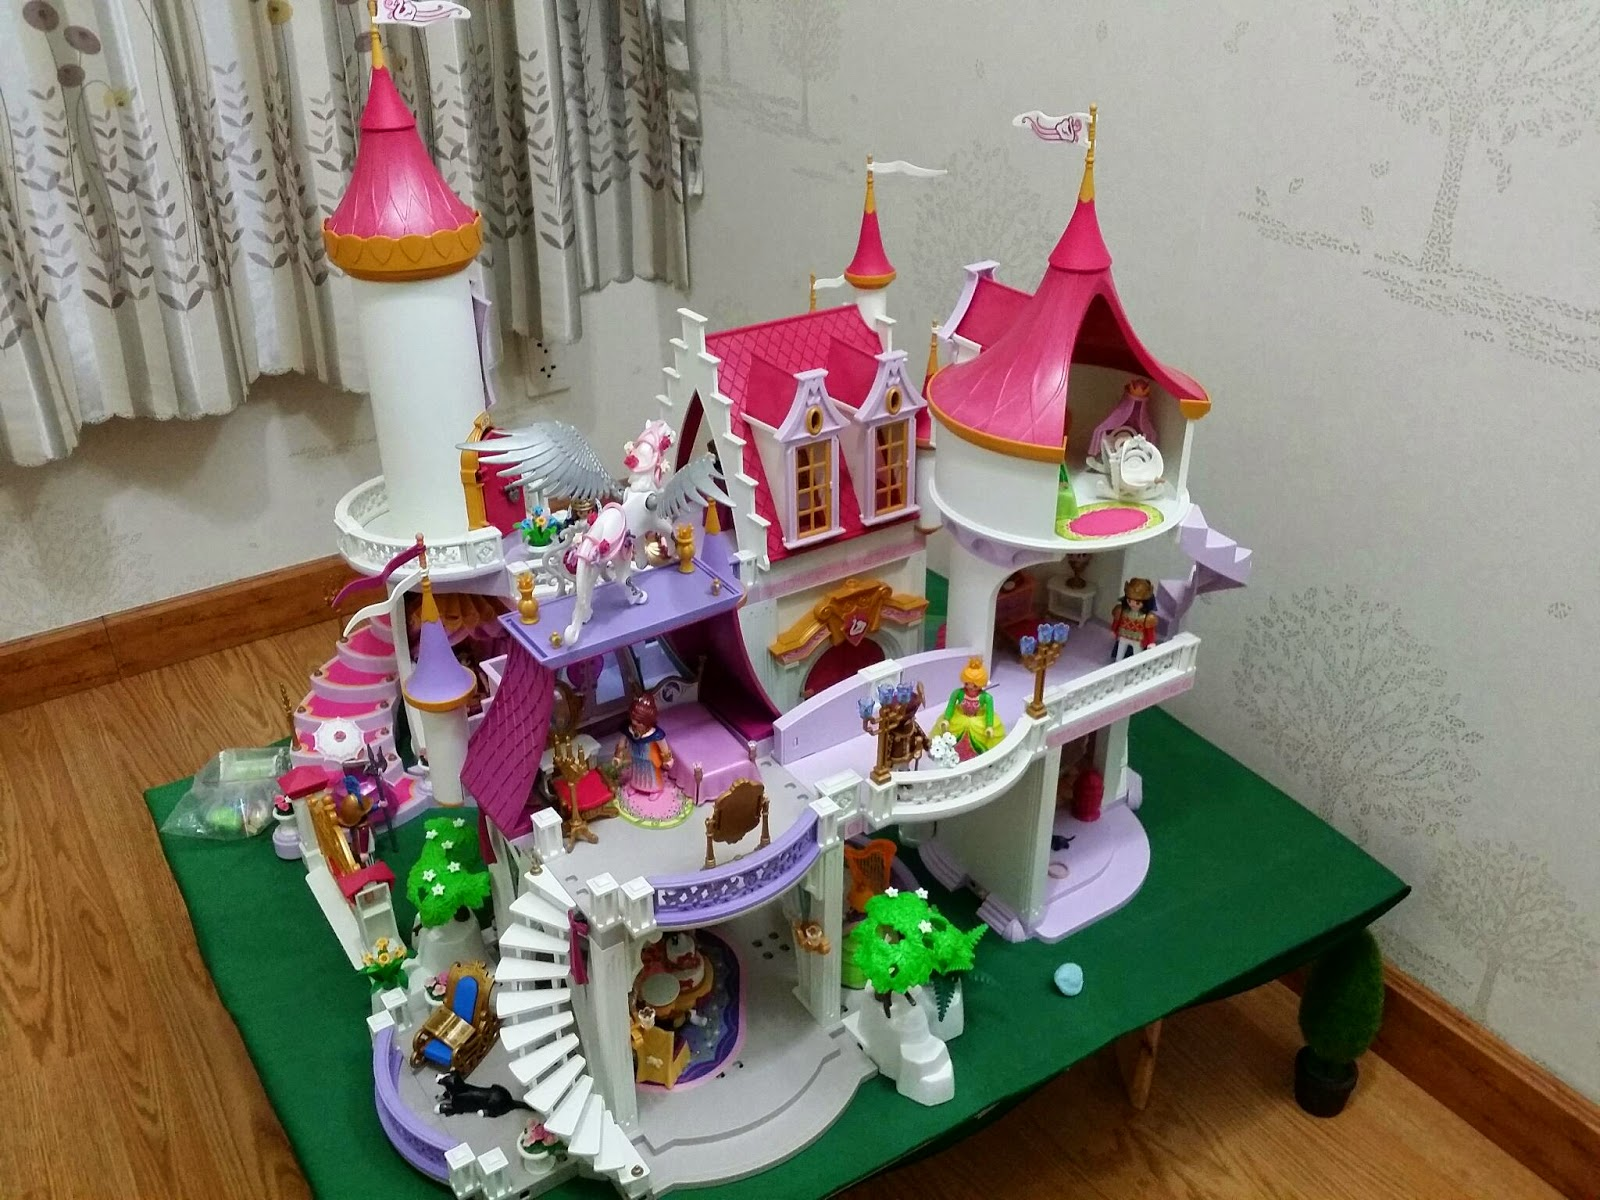 Playmobil 5142 5474 princess castle diorama playmobil for Playmobil princesse 5142